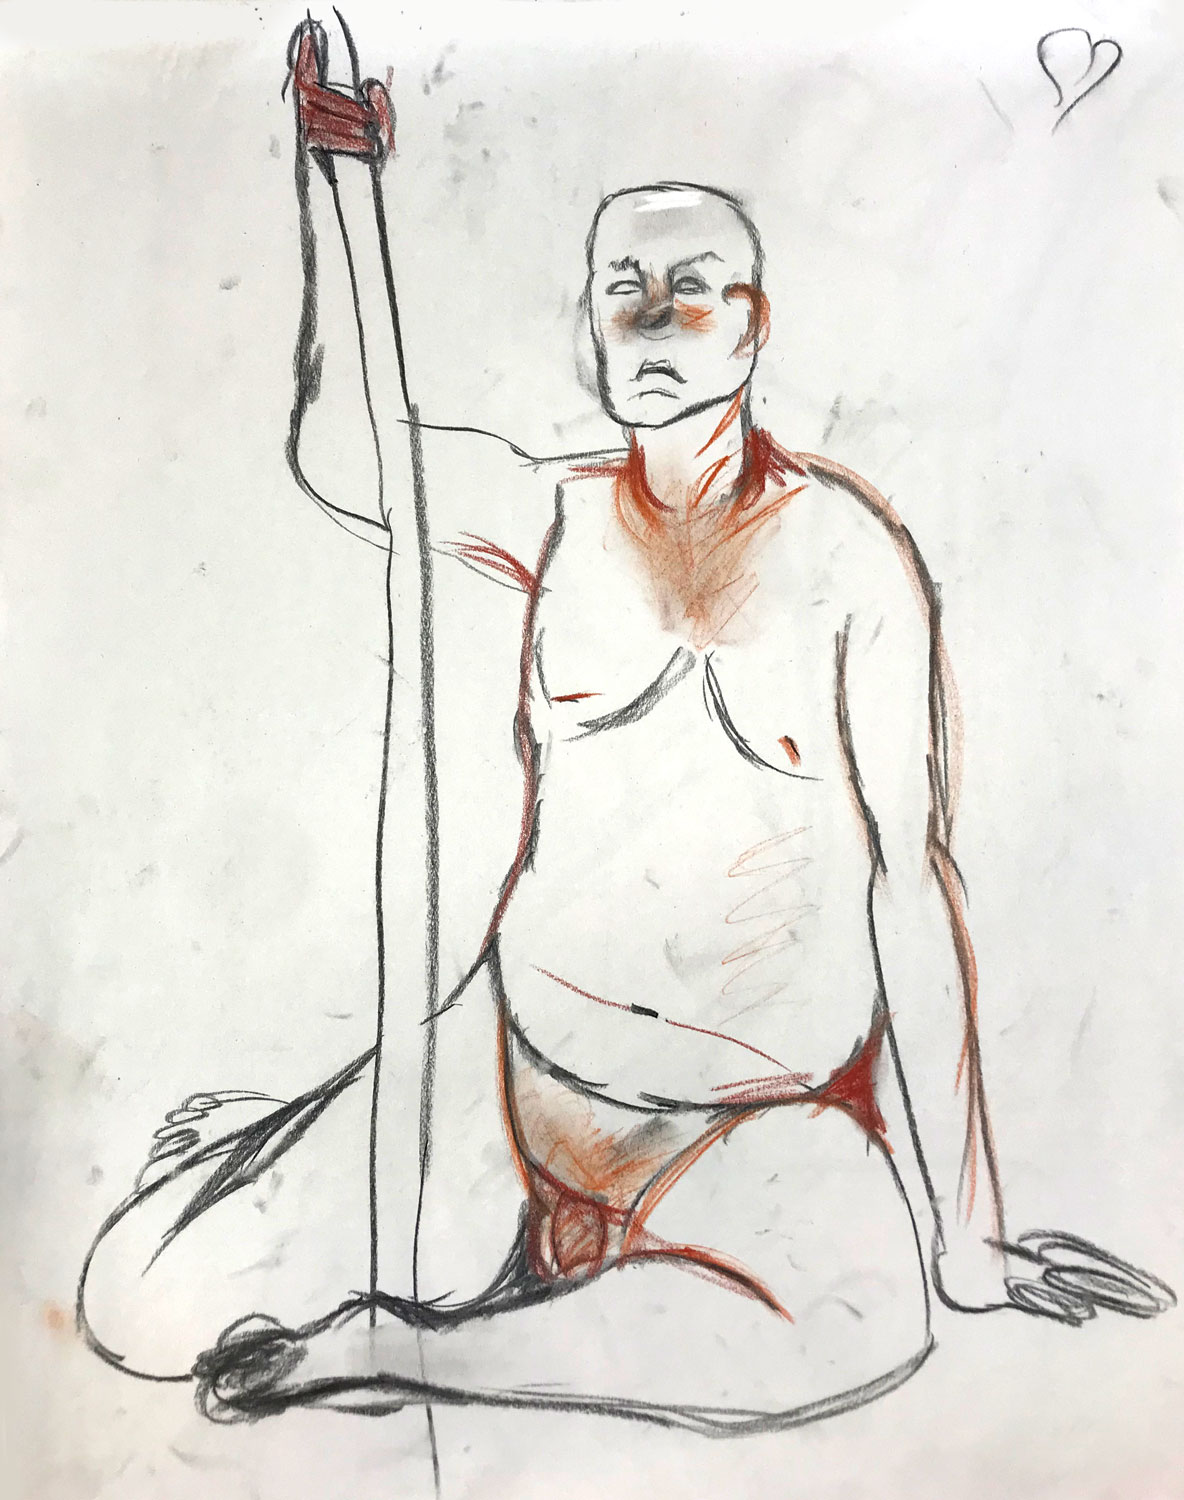 MIAD, Milwaukee • 11/26/18 • Charcoal and pastel on newsprint